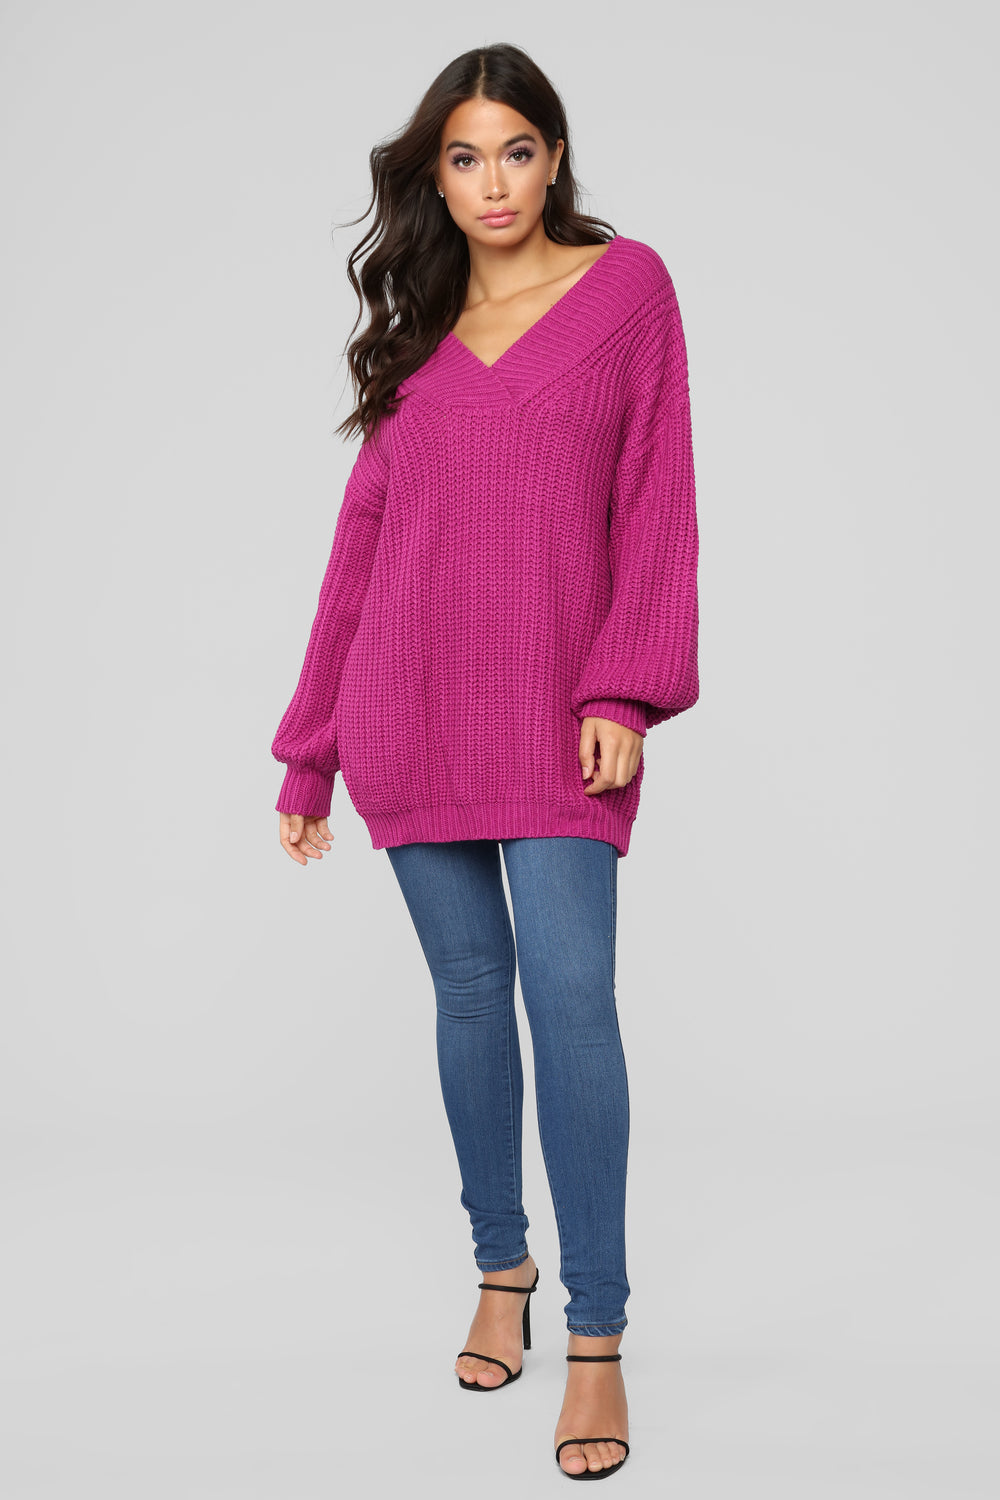 Let's Snuggle Tunic Sweater - Magenta